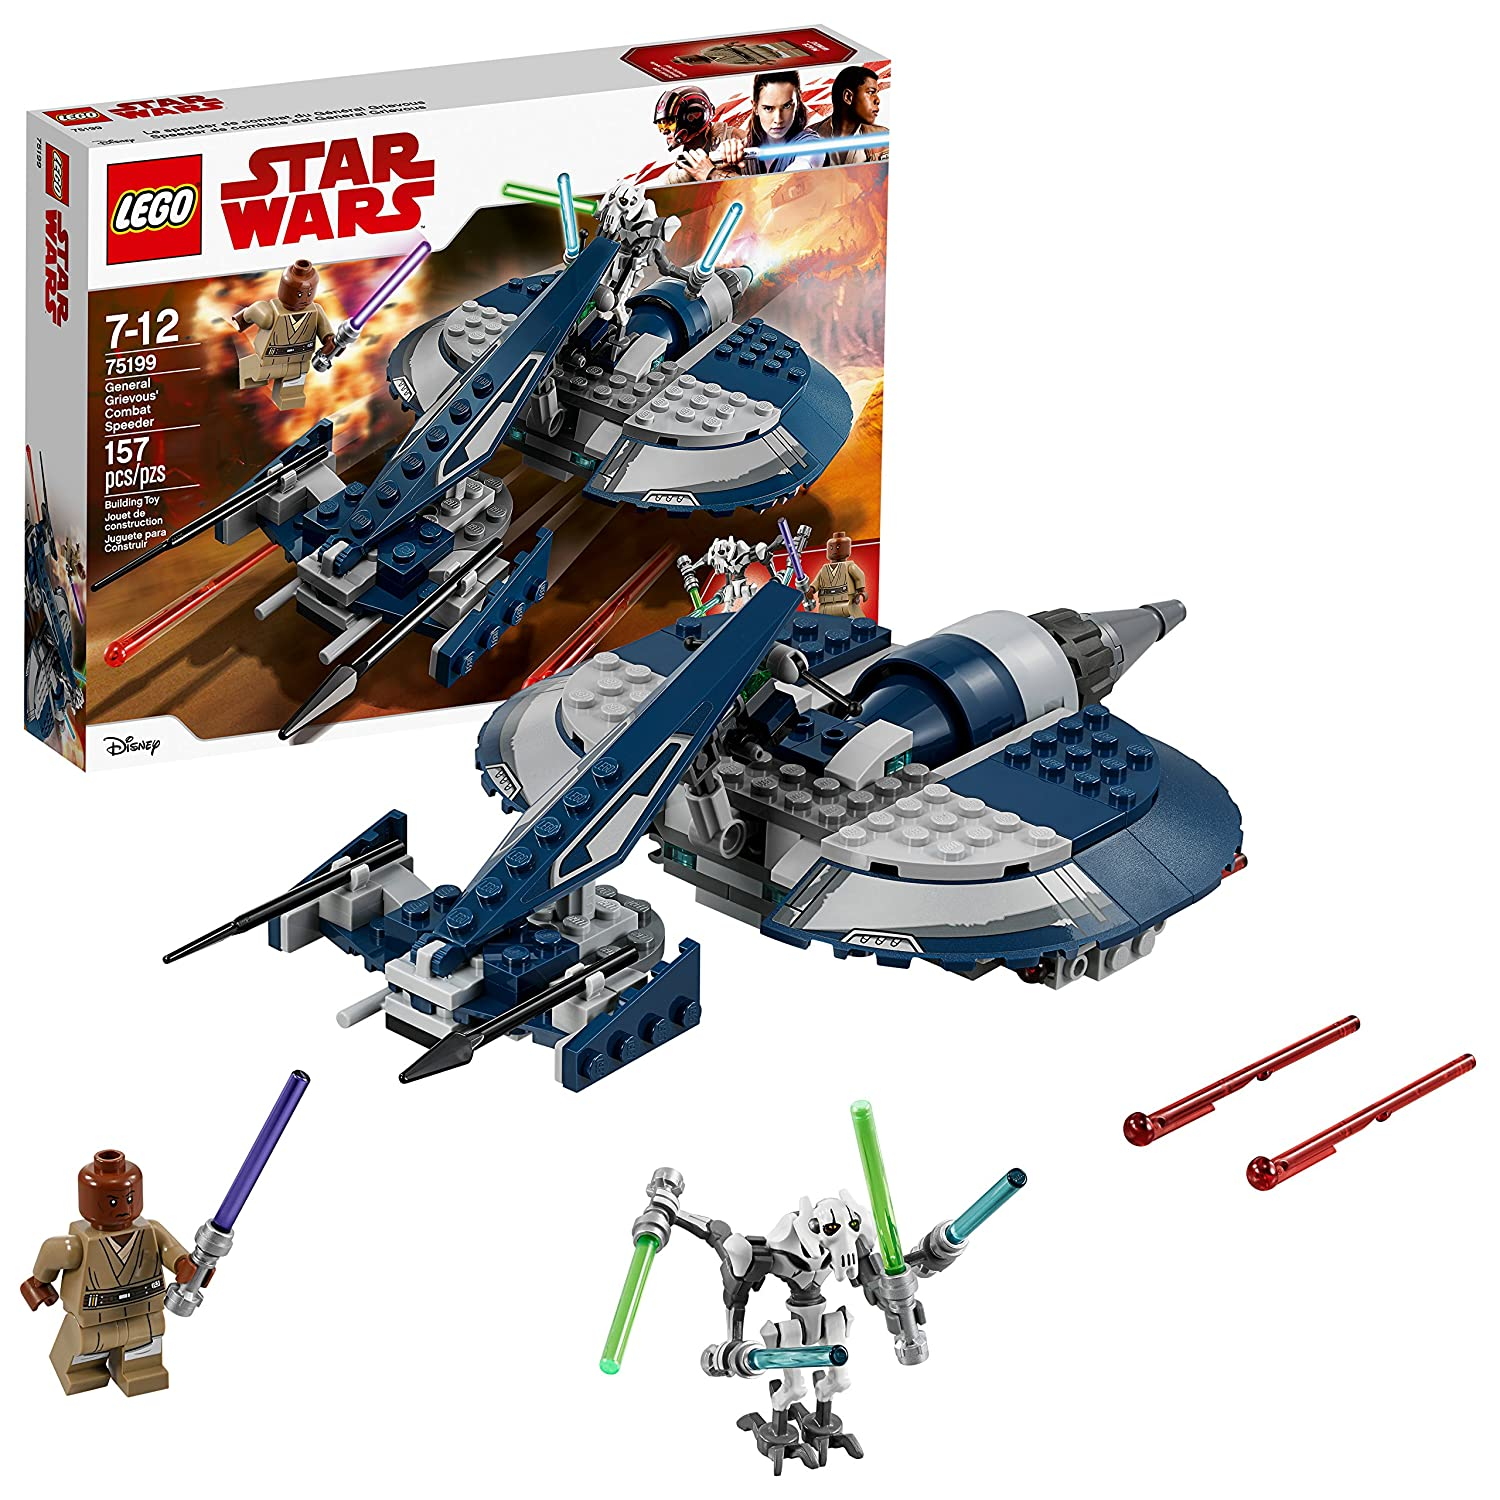 LEGO Star Wars 6212558 General Grievous' Combat Speeder 75199 Building Kit (157 Piece)